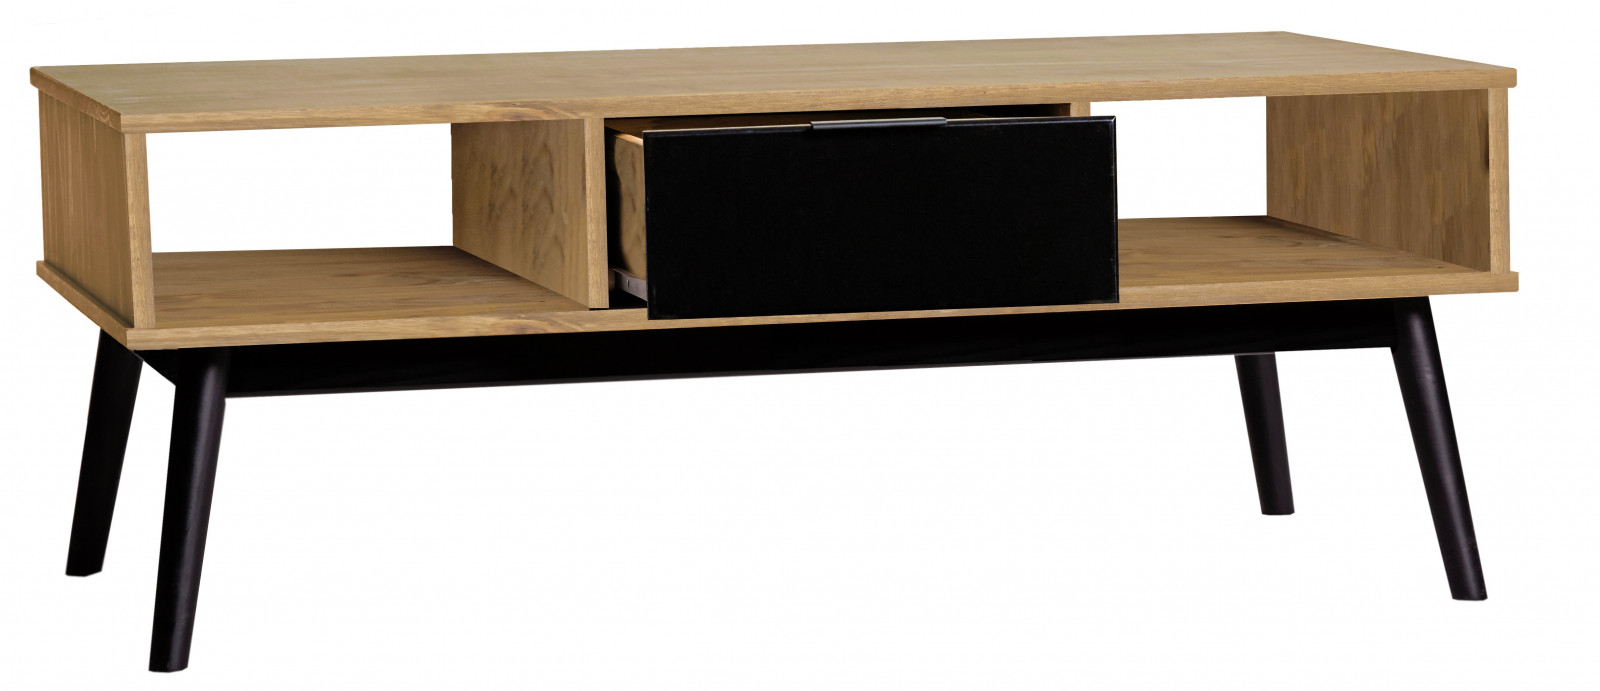 table basse lucia noir et bois cir bobochic. Black Bedroom Furniture Sets. Home Design Ideas